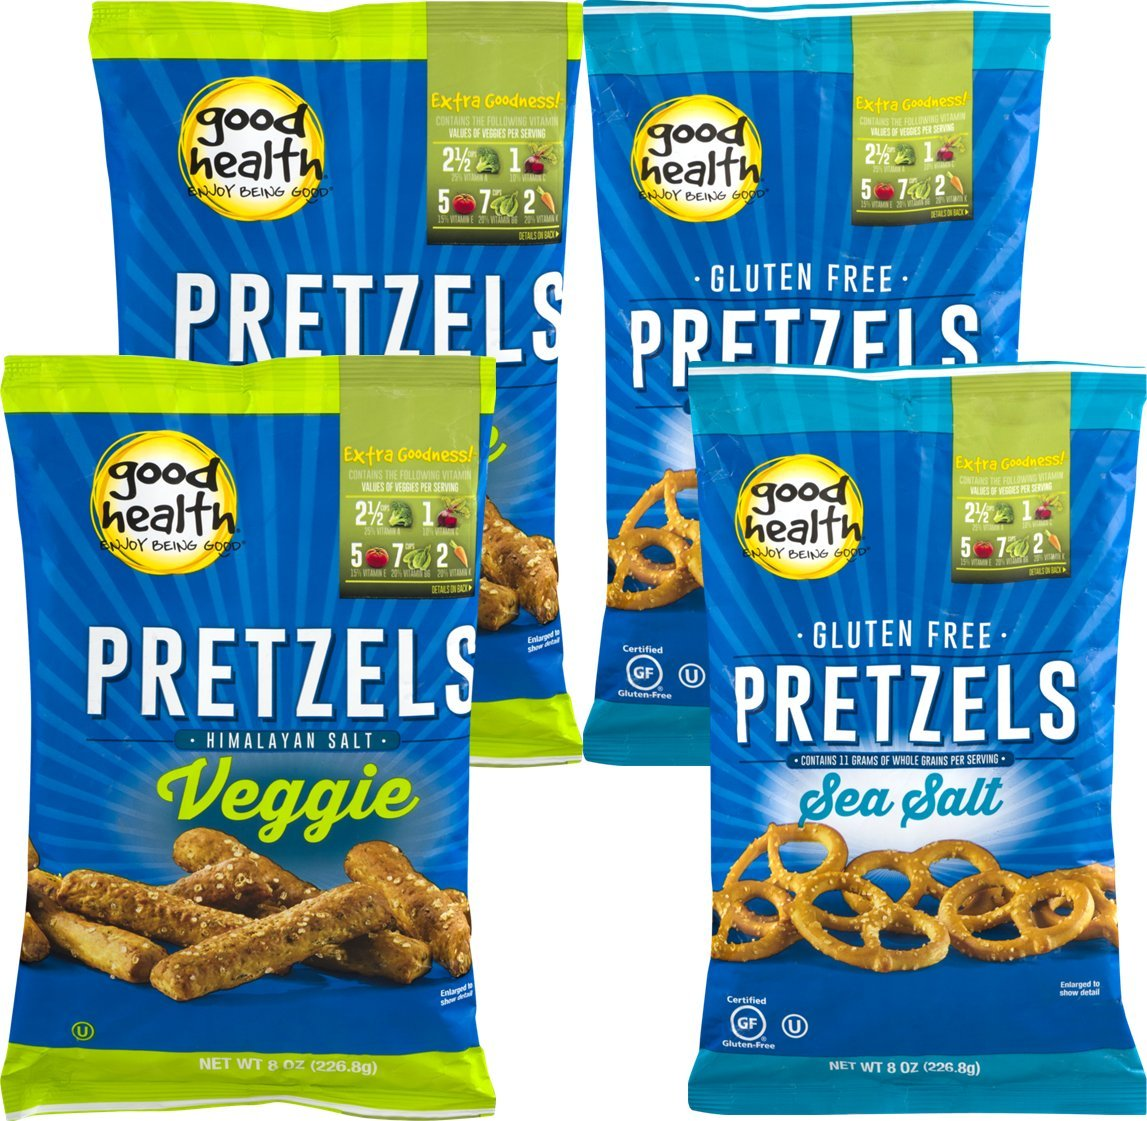 Good Health Gluten Free Pretzels & Good Health Veggie Pretzels Variety 4-Pack